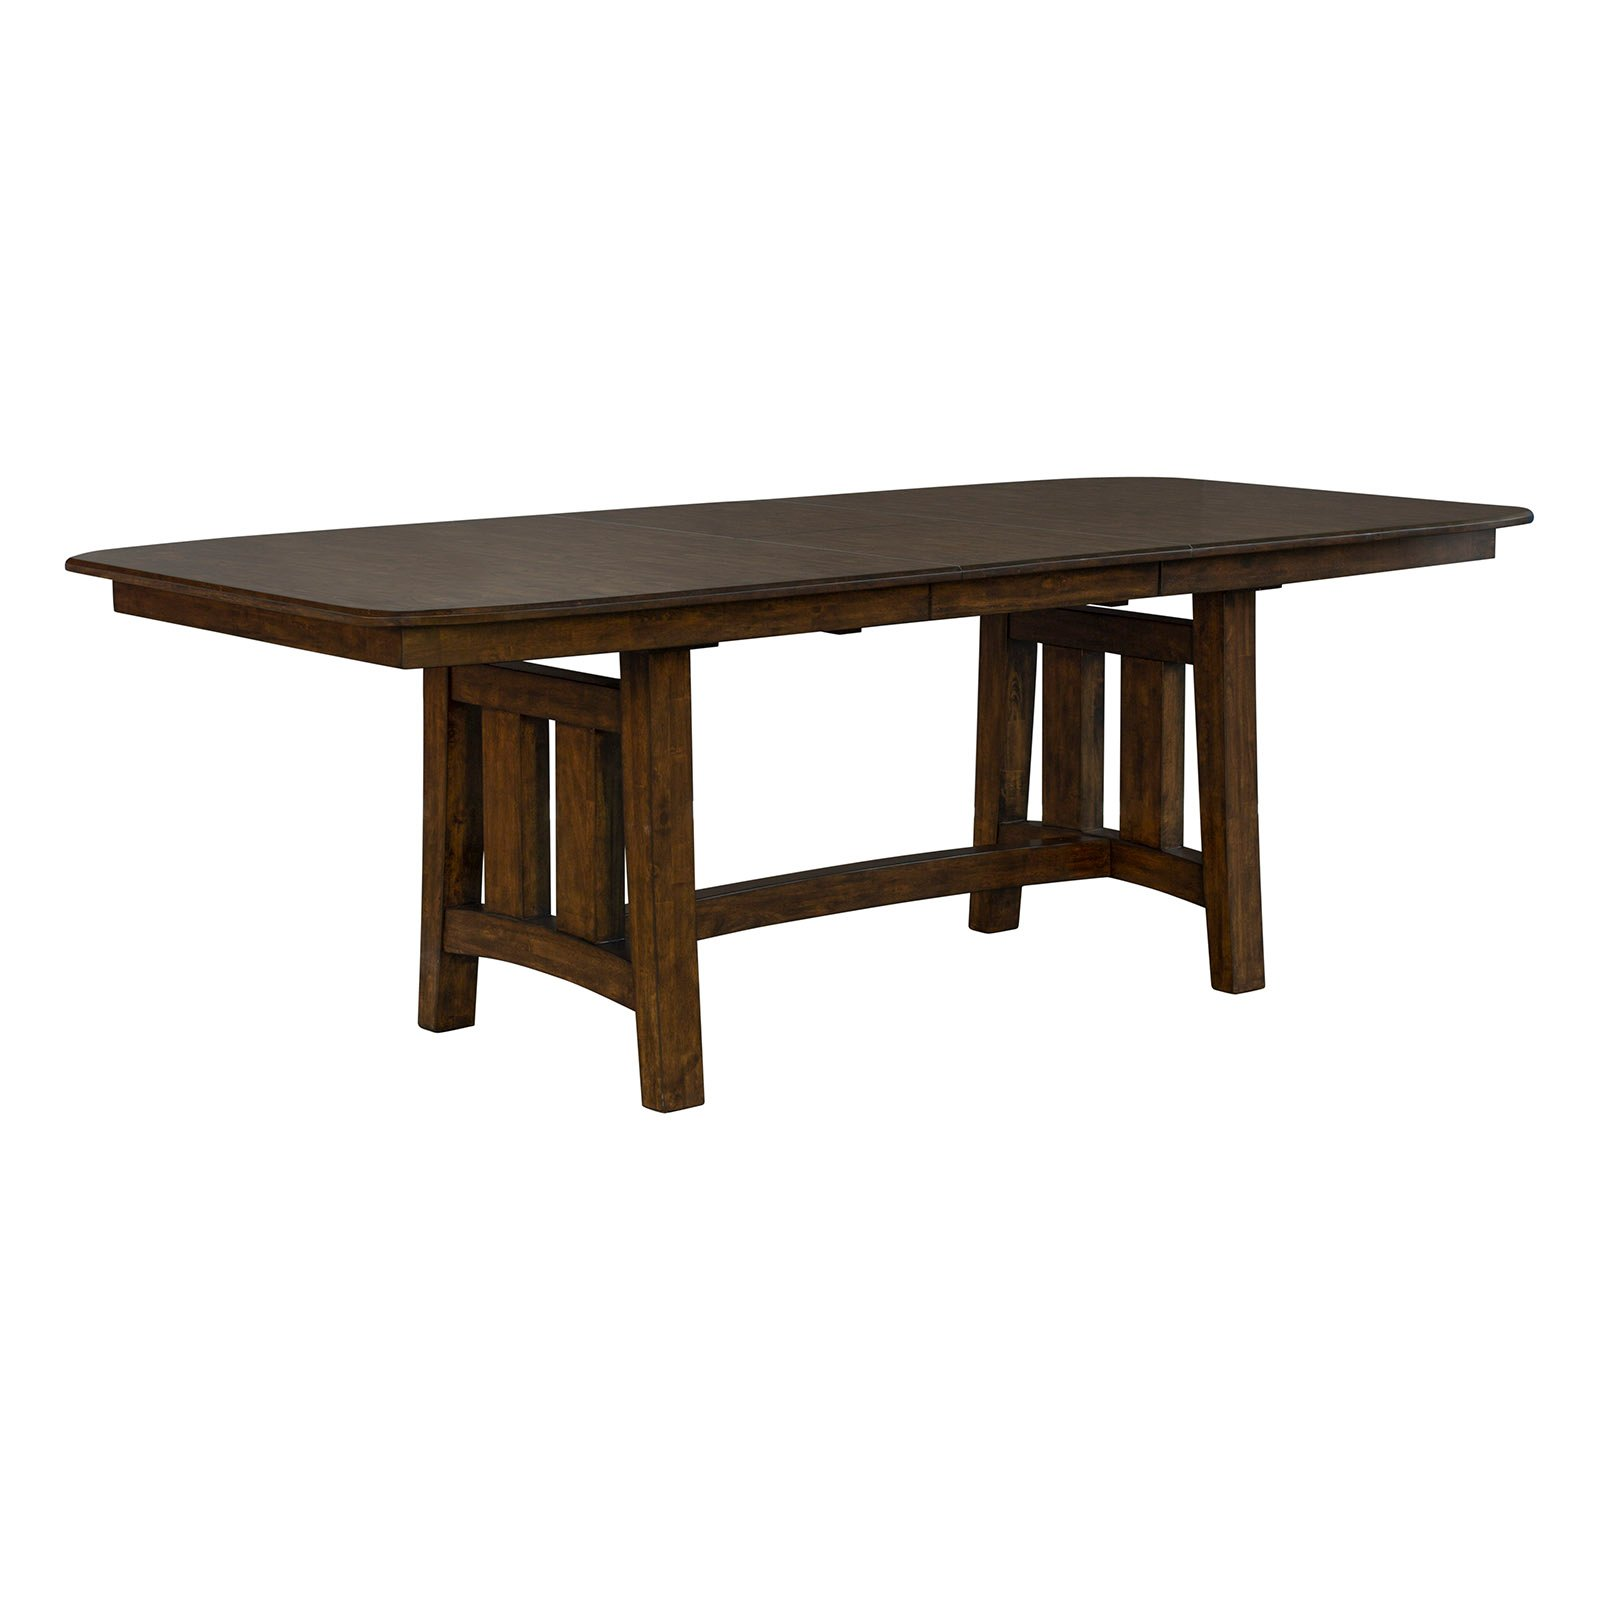 Rustic Brown Trestle Dining Room Table - Henderson